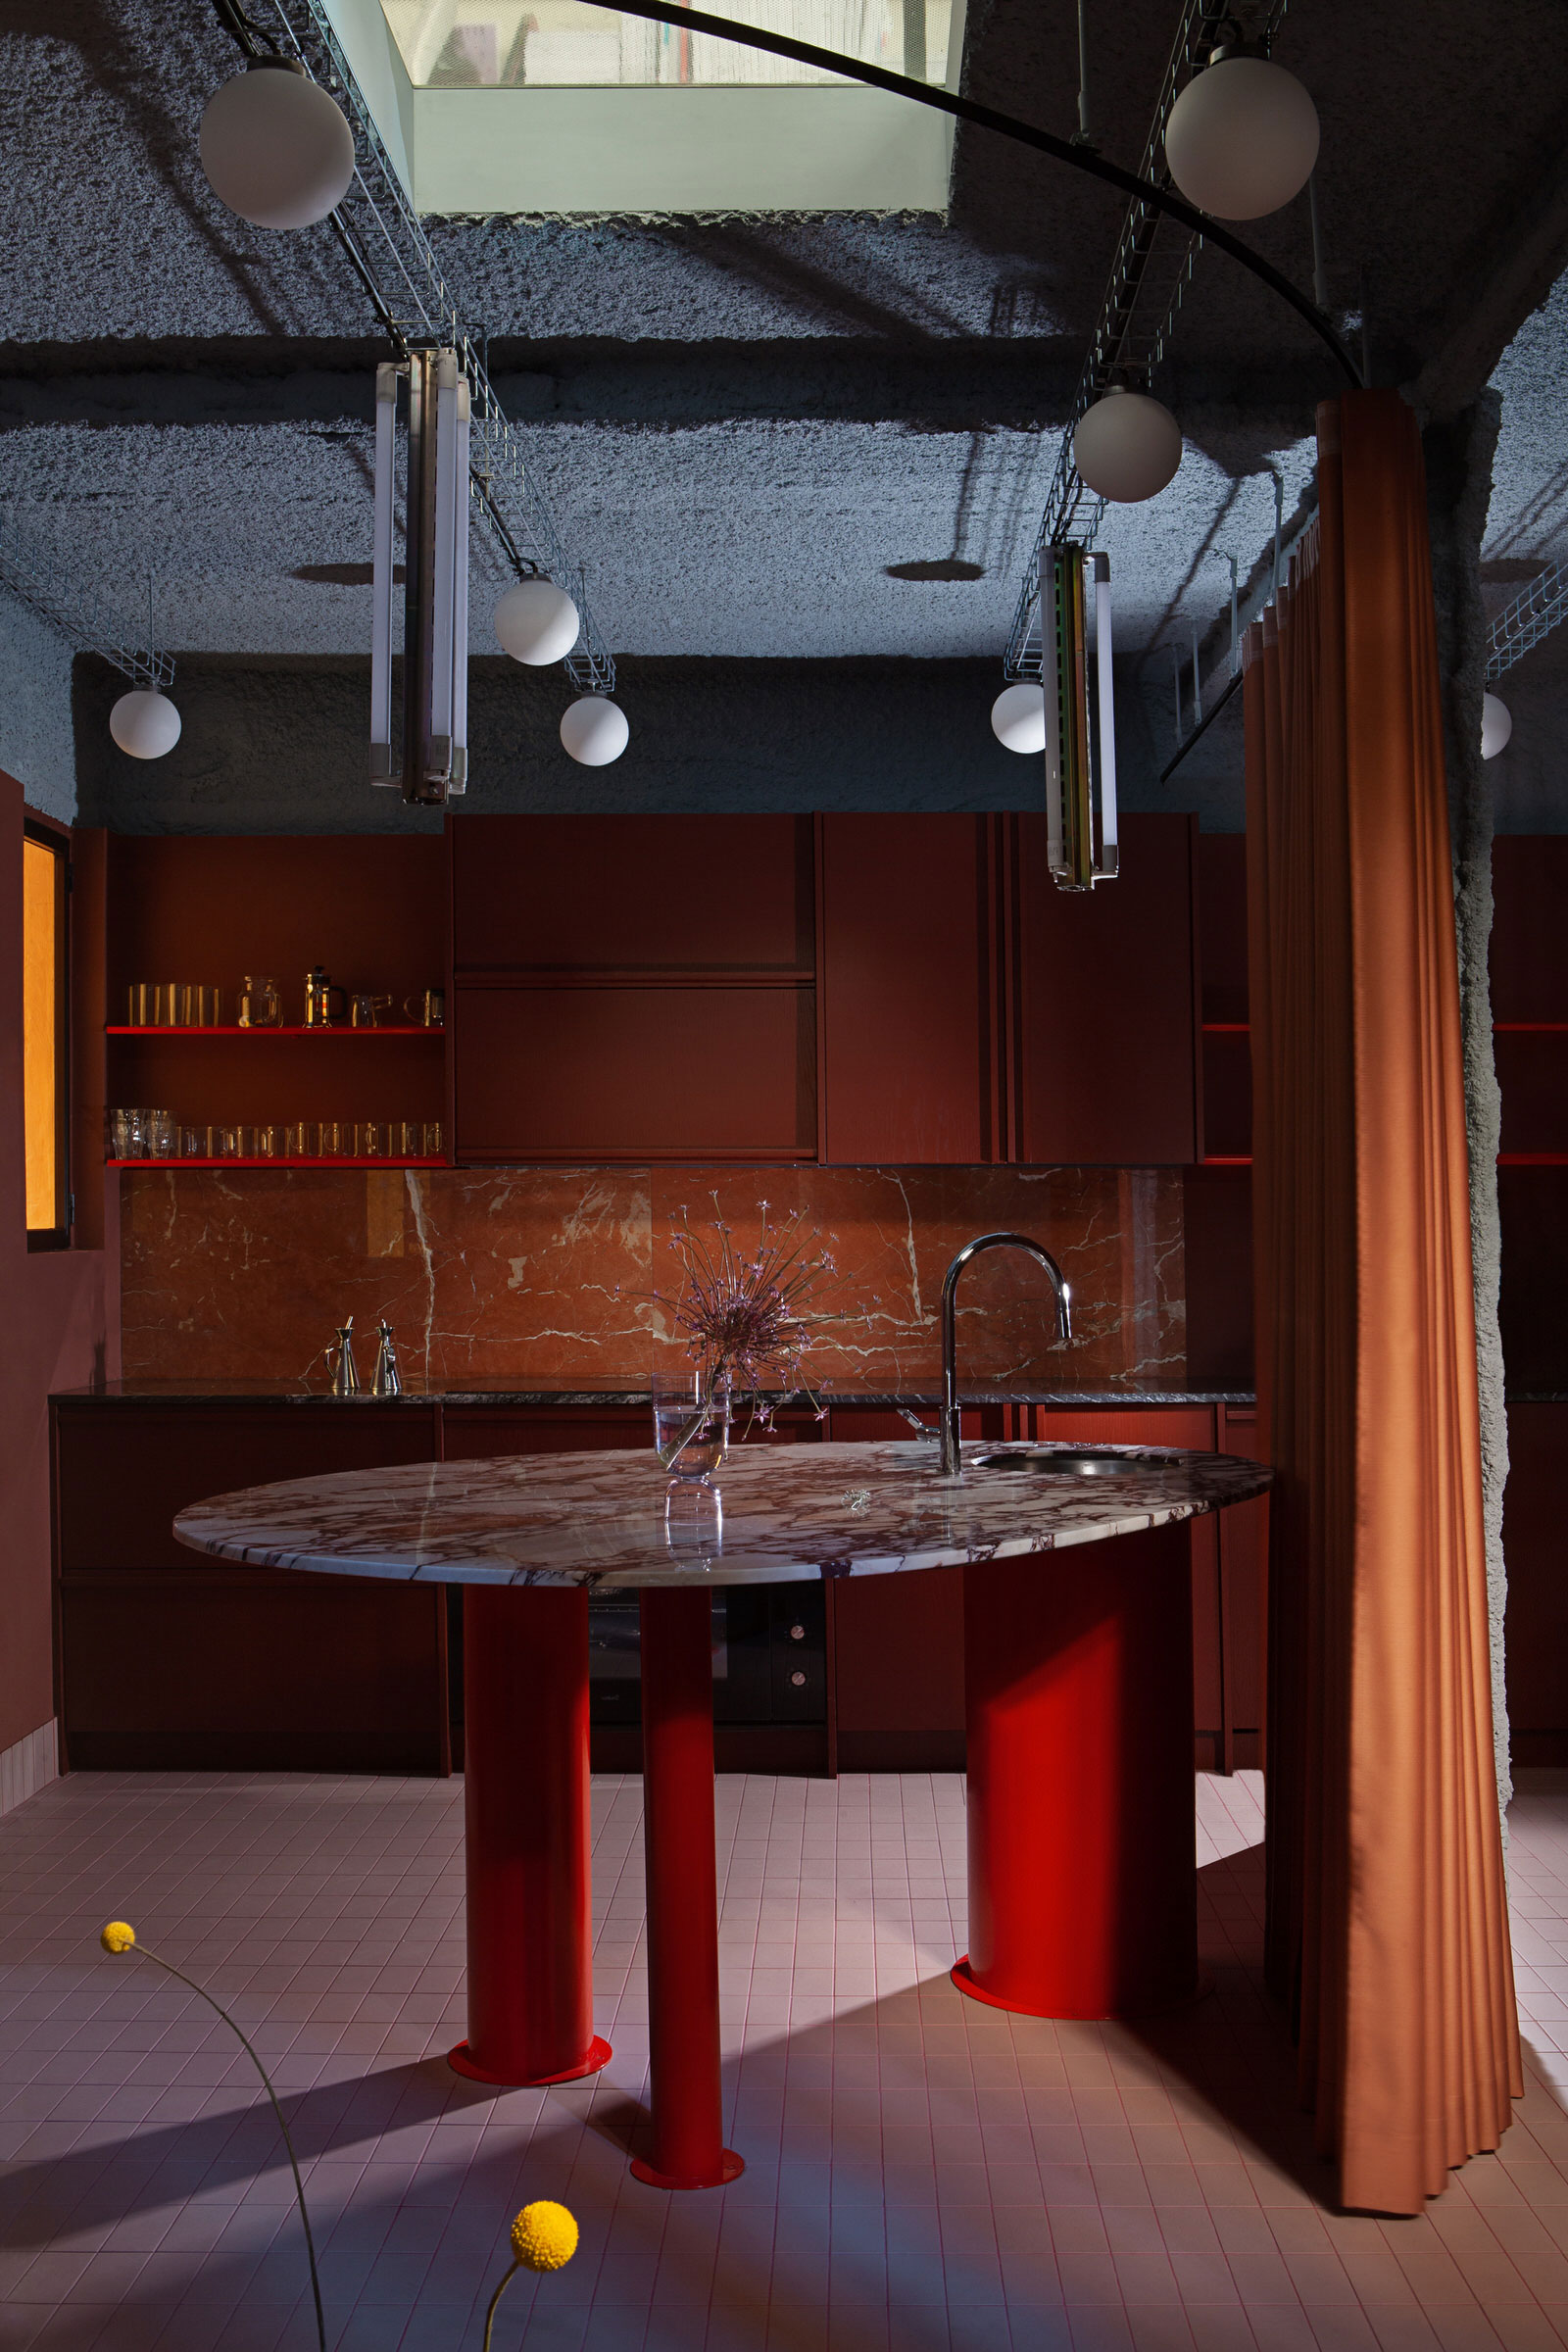 Plutarco Design Office Madrid Hecho Store Photo Asier Rua Yellowtrace 03